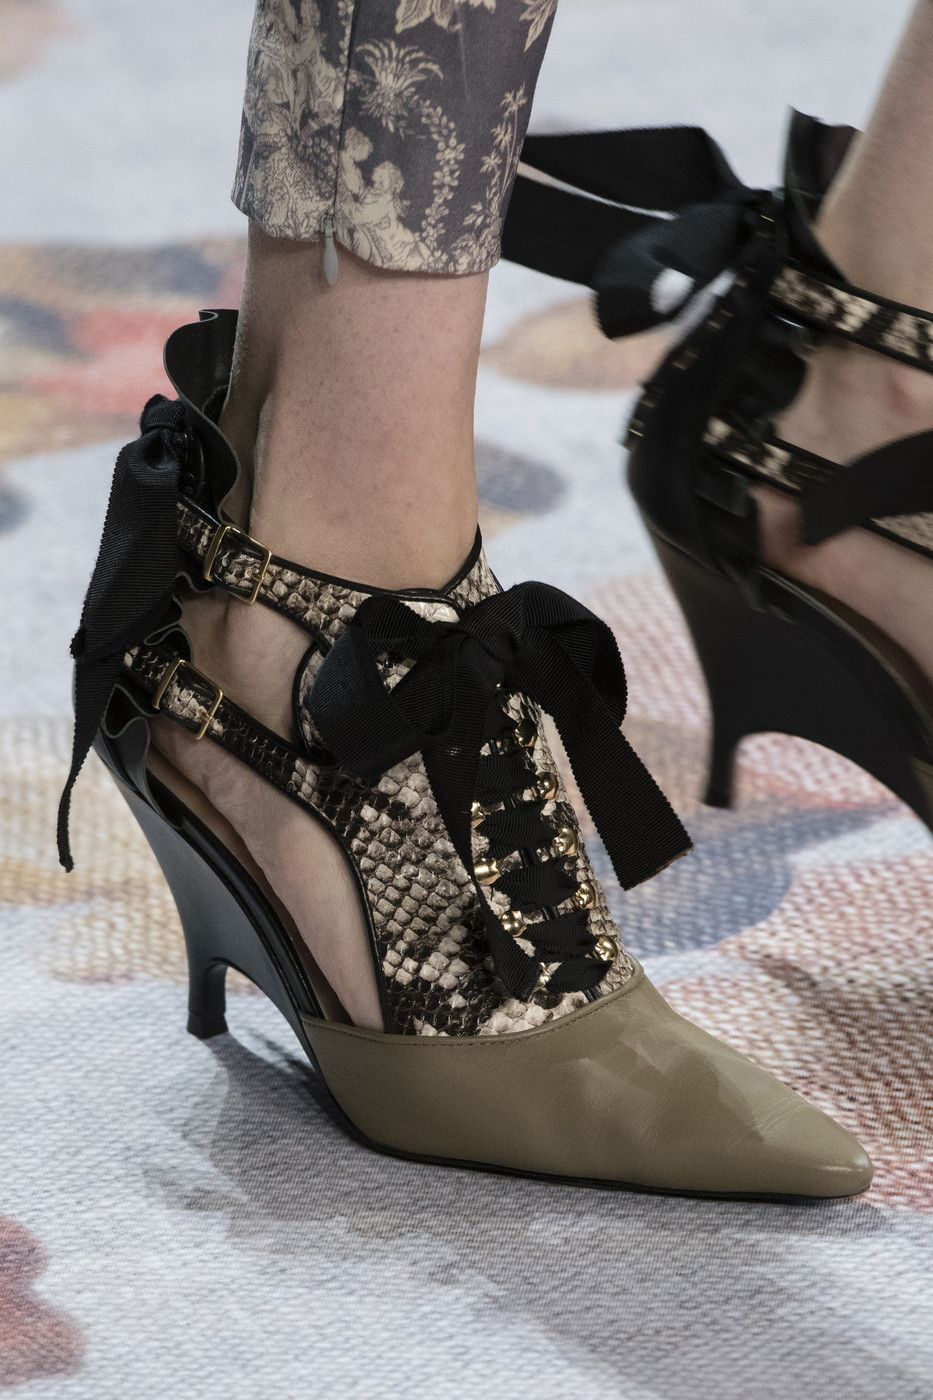 Zimmermann At New York Fashion Week Fall 2018 Shoes Fashion Photography Embroidered Shoes Fashion